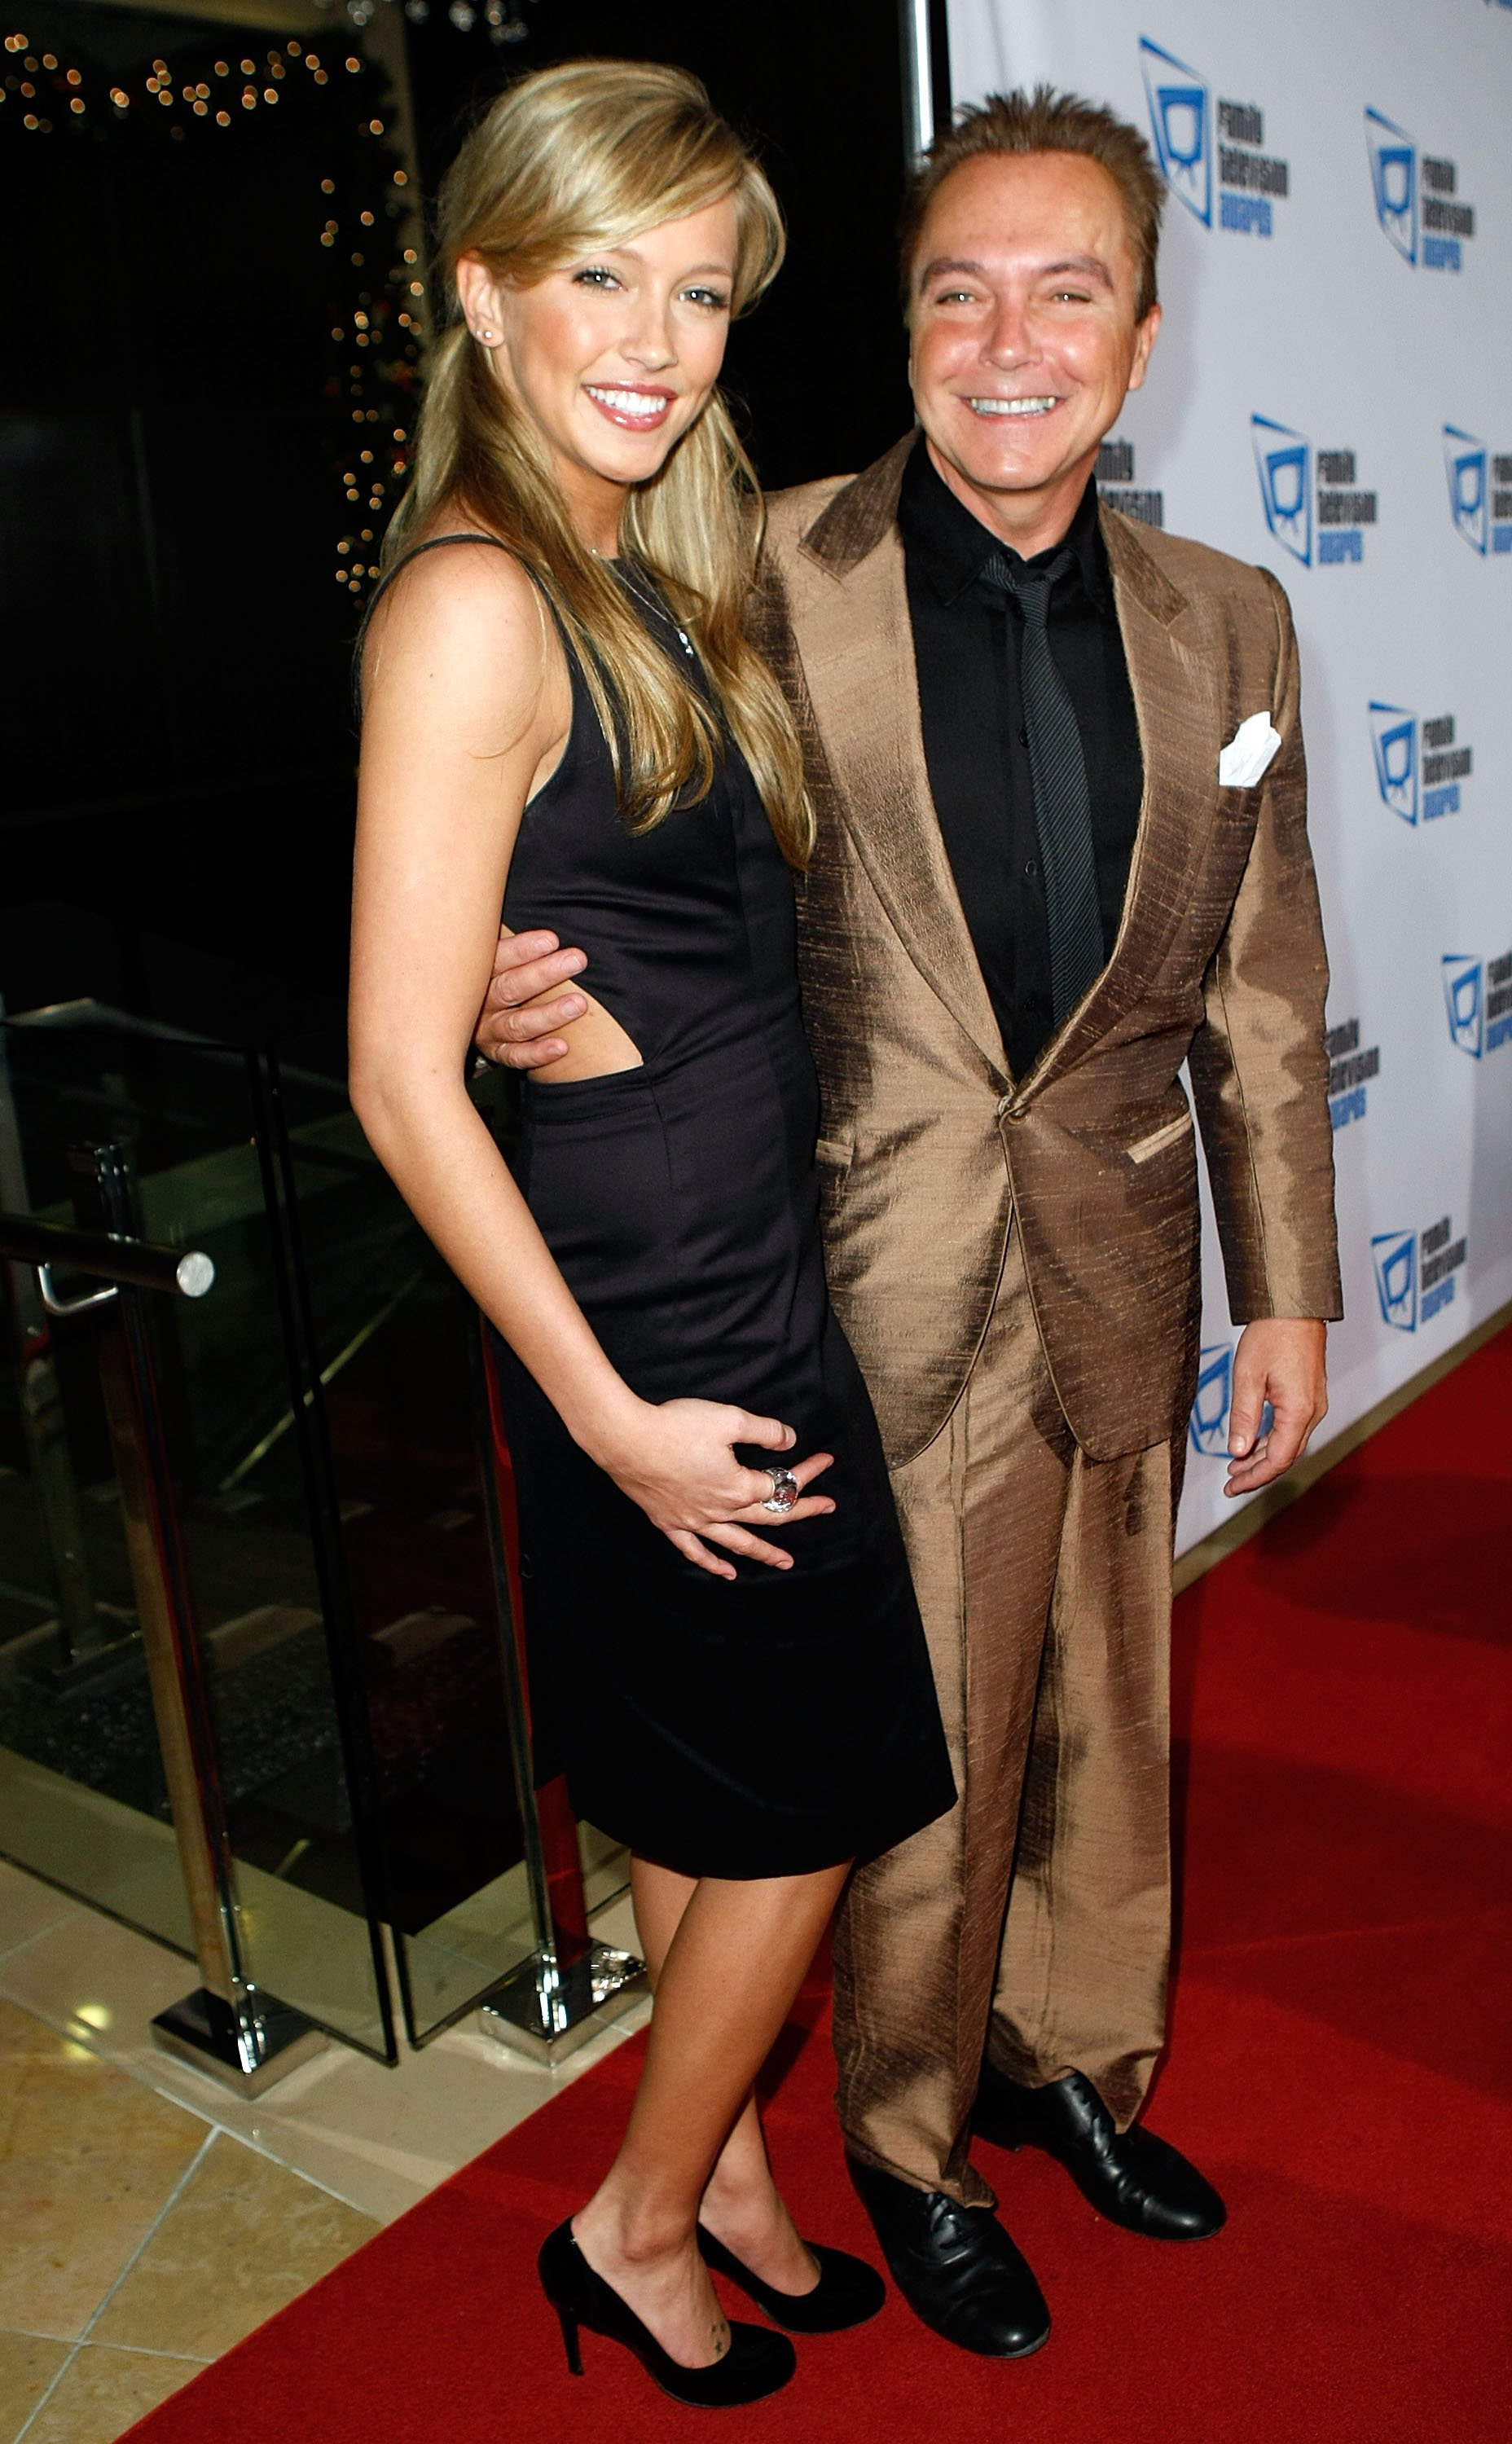 David Cassidy and Katie Cassidy arrive at the 9th annual Family Television Awards held at the Beverly Hilton Hotel on November 28, 2007, in Los Angeles, California. | Source: Getty Images.